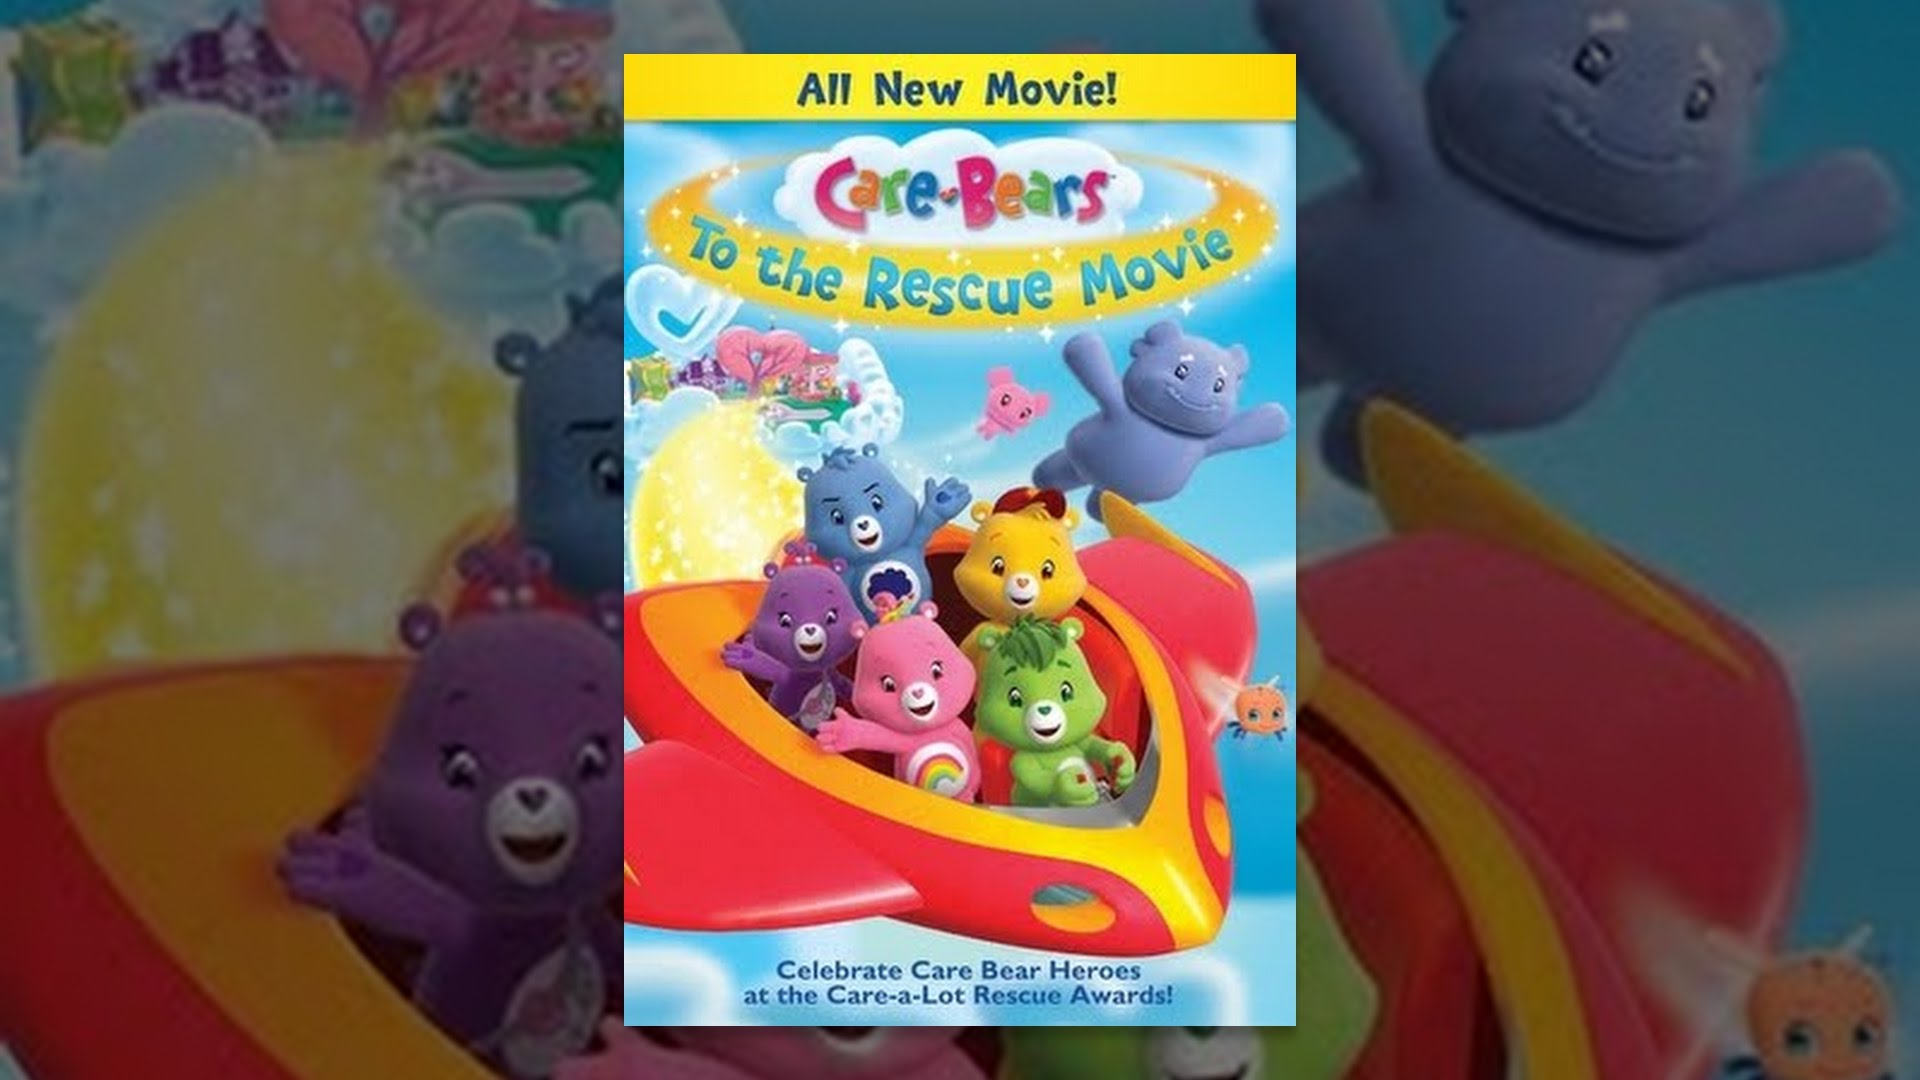 care bears to the rescue movie youtube